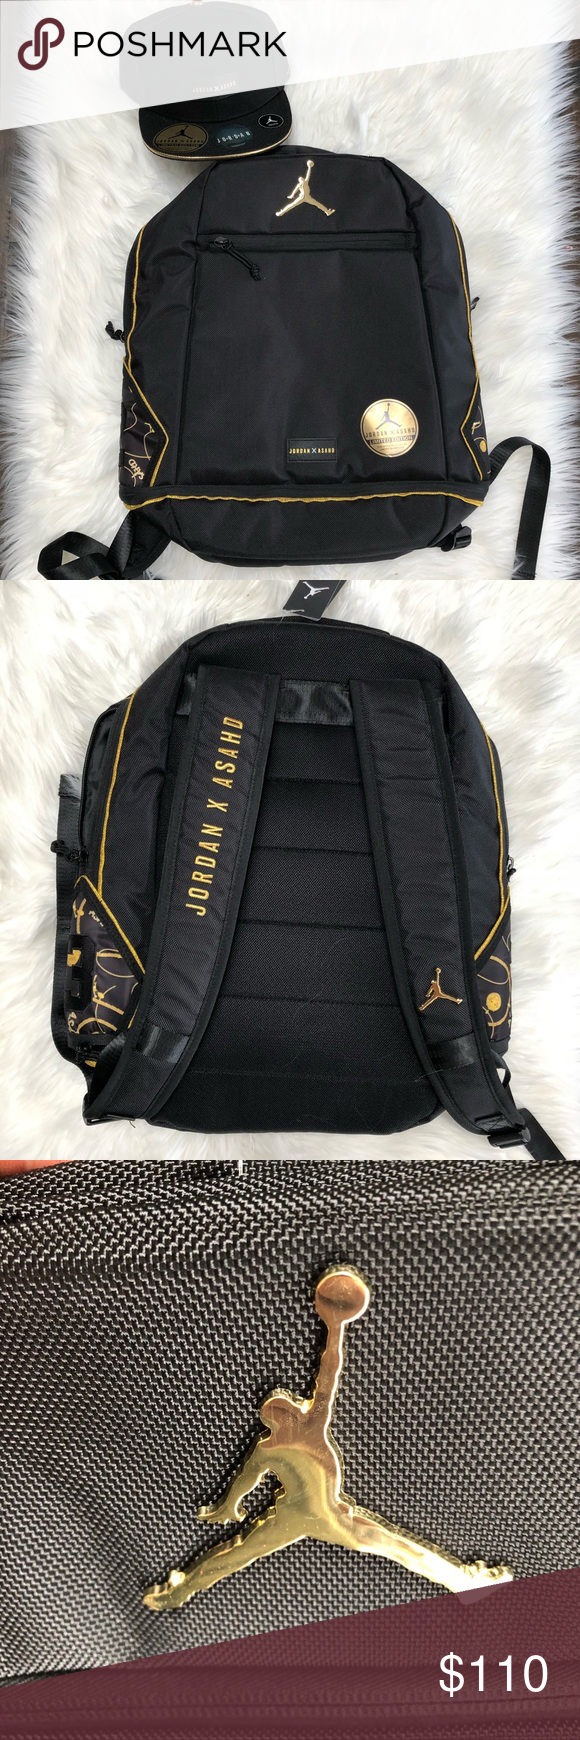 bd6417d1637 NWT 🎒 JORDAN X ASAHD KHALED COLLAB BACKPACK & HAT BRAND NEW NIKE JORDAN X  ASAHD KHALED (DJ KHALED SON) COLLABORATION BACKPACK WITH MATCHING HAT 🧢 🎒  BLACK ...